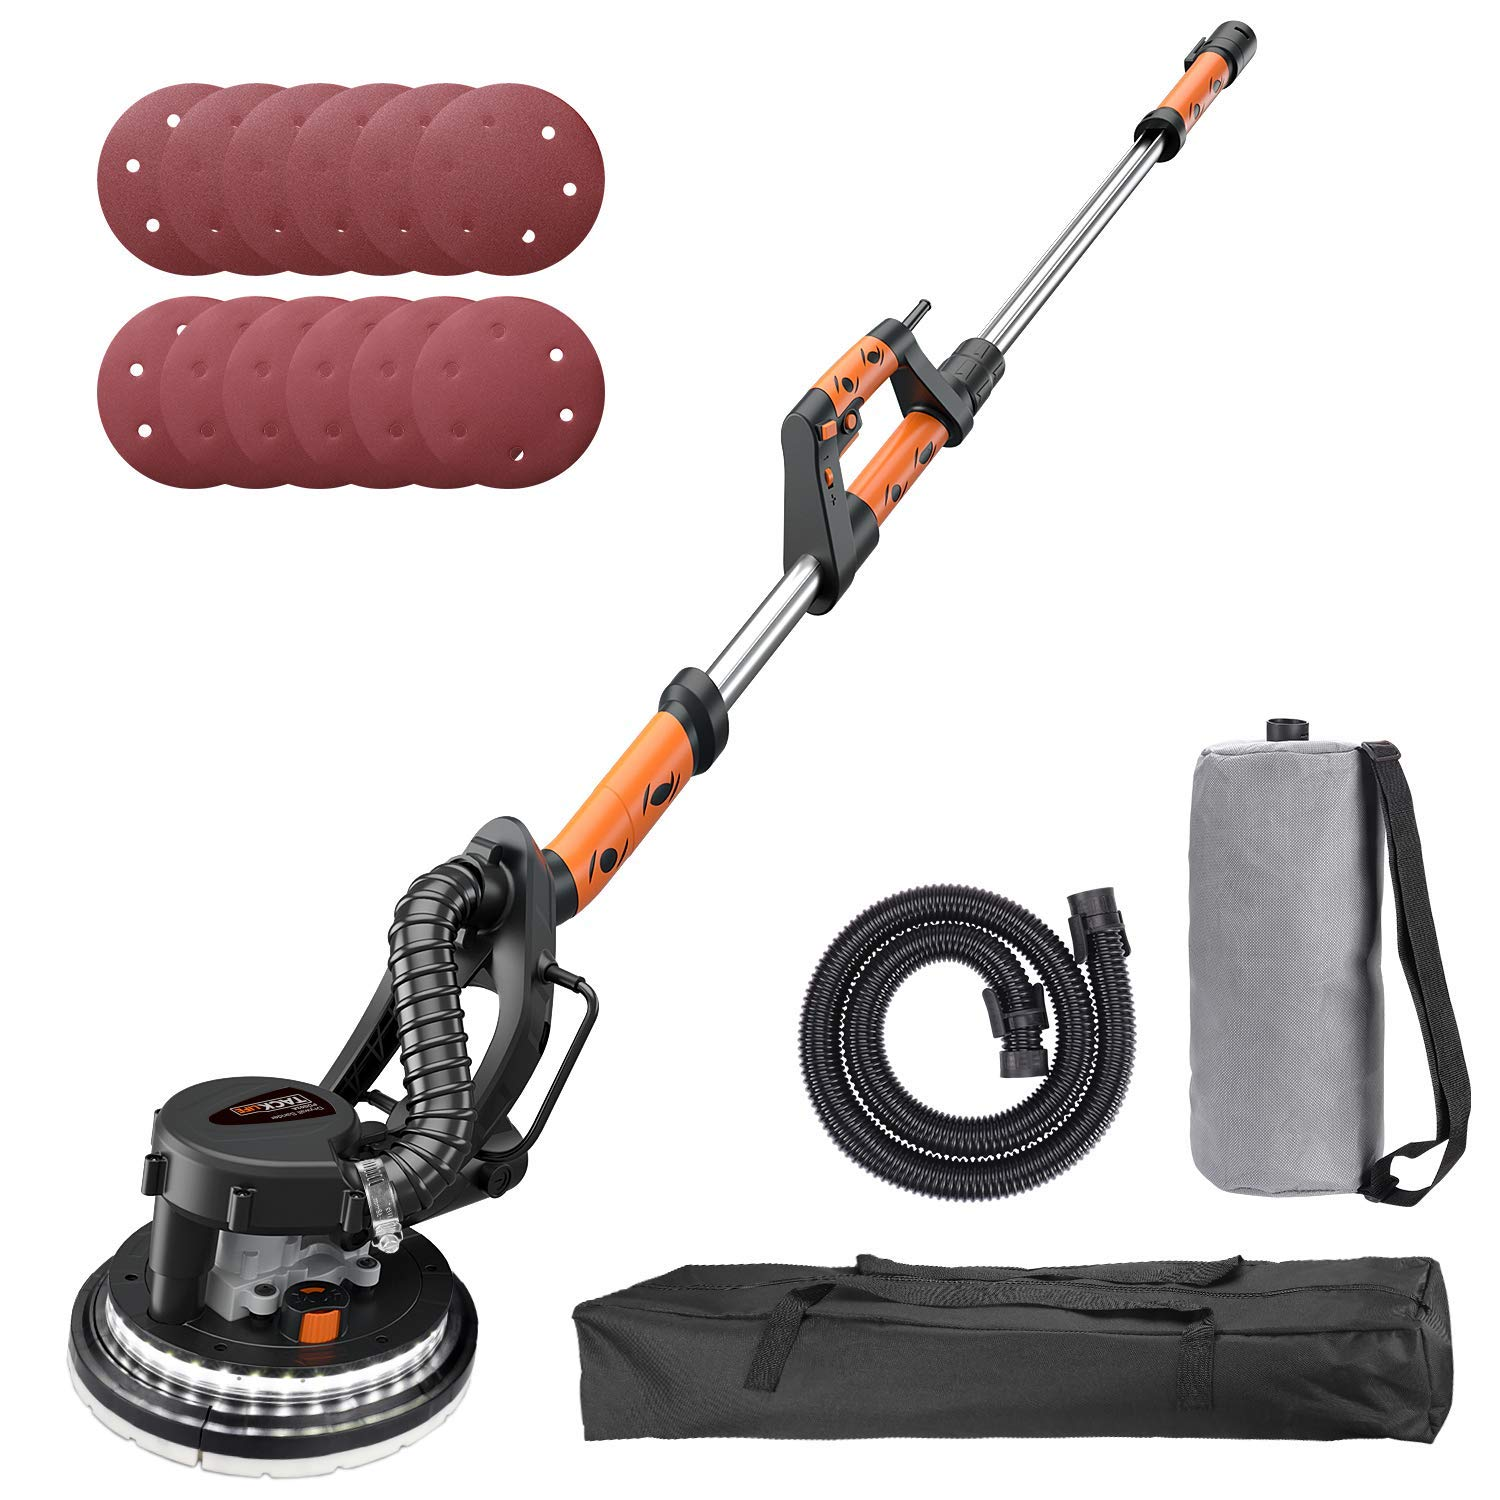 TACKLIFE Drywall Sander, 6.7A(800W), Automatic Vacuum System, 12 Sanding Discs, Variable Speed 500-1800 RPM Electric Drywall Sander with LED Light and a Carry Bag, Extendable Handle 1.6-1.9m PDS03A by TACKLIFE